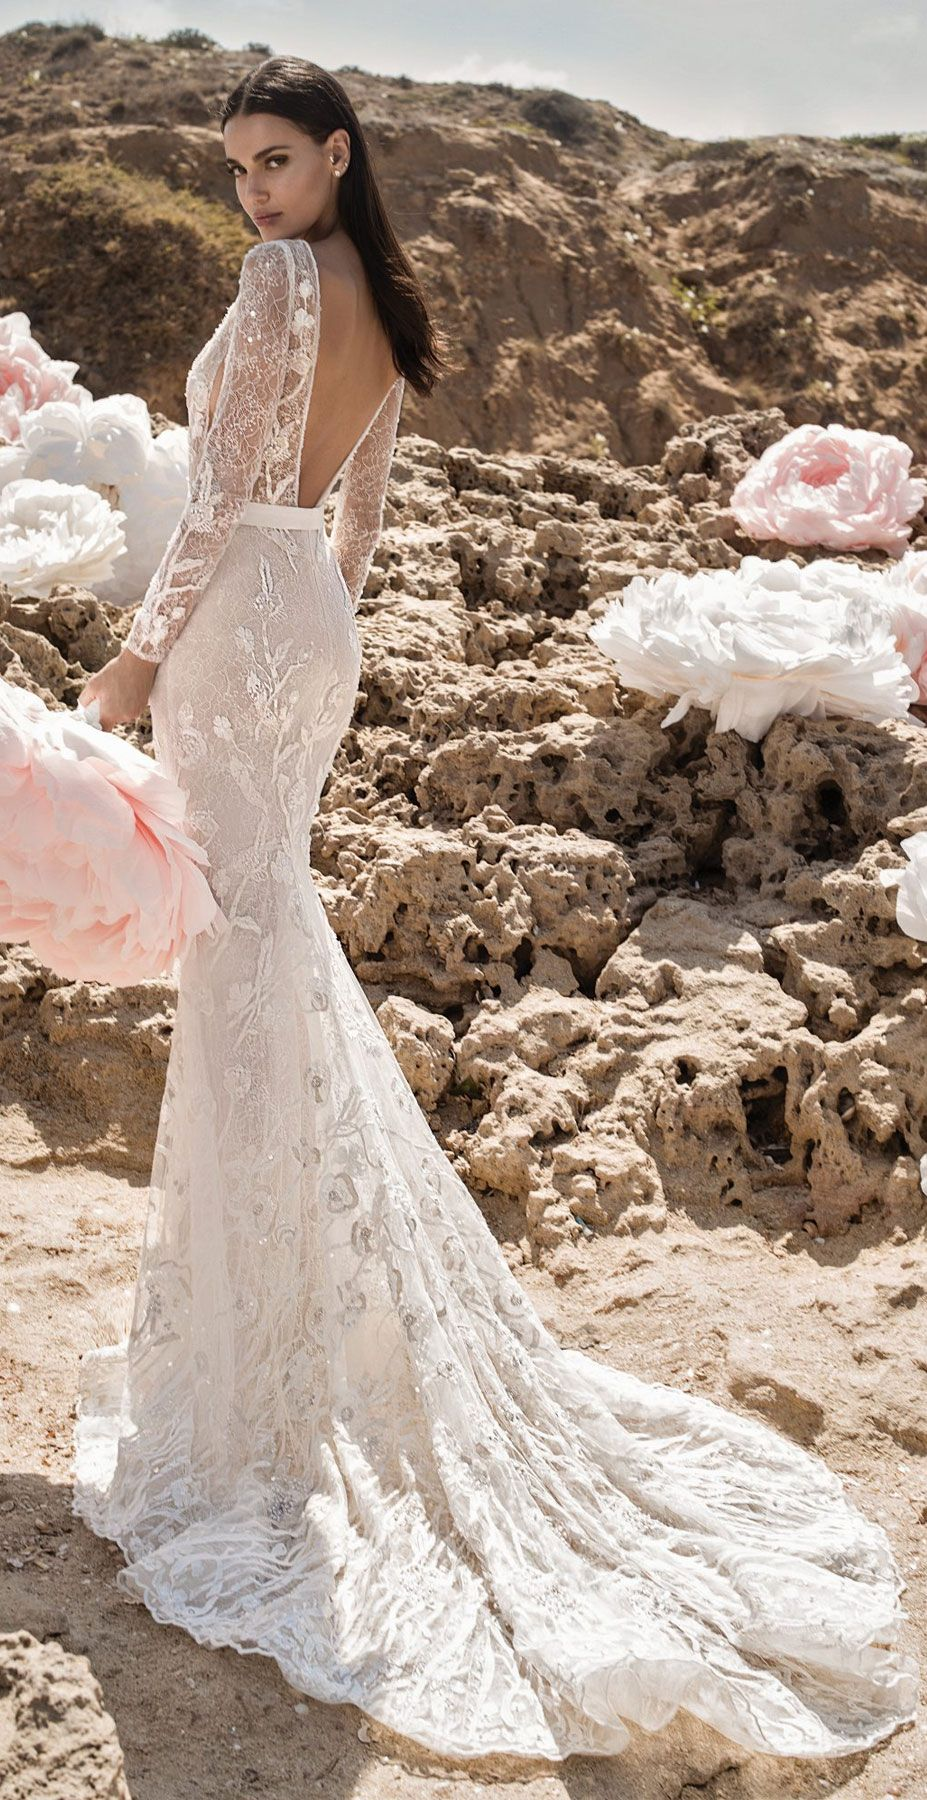 Lee Petra Grebenau wedding dresses – 2019 Enchanted Blossom Bridal Collection